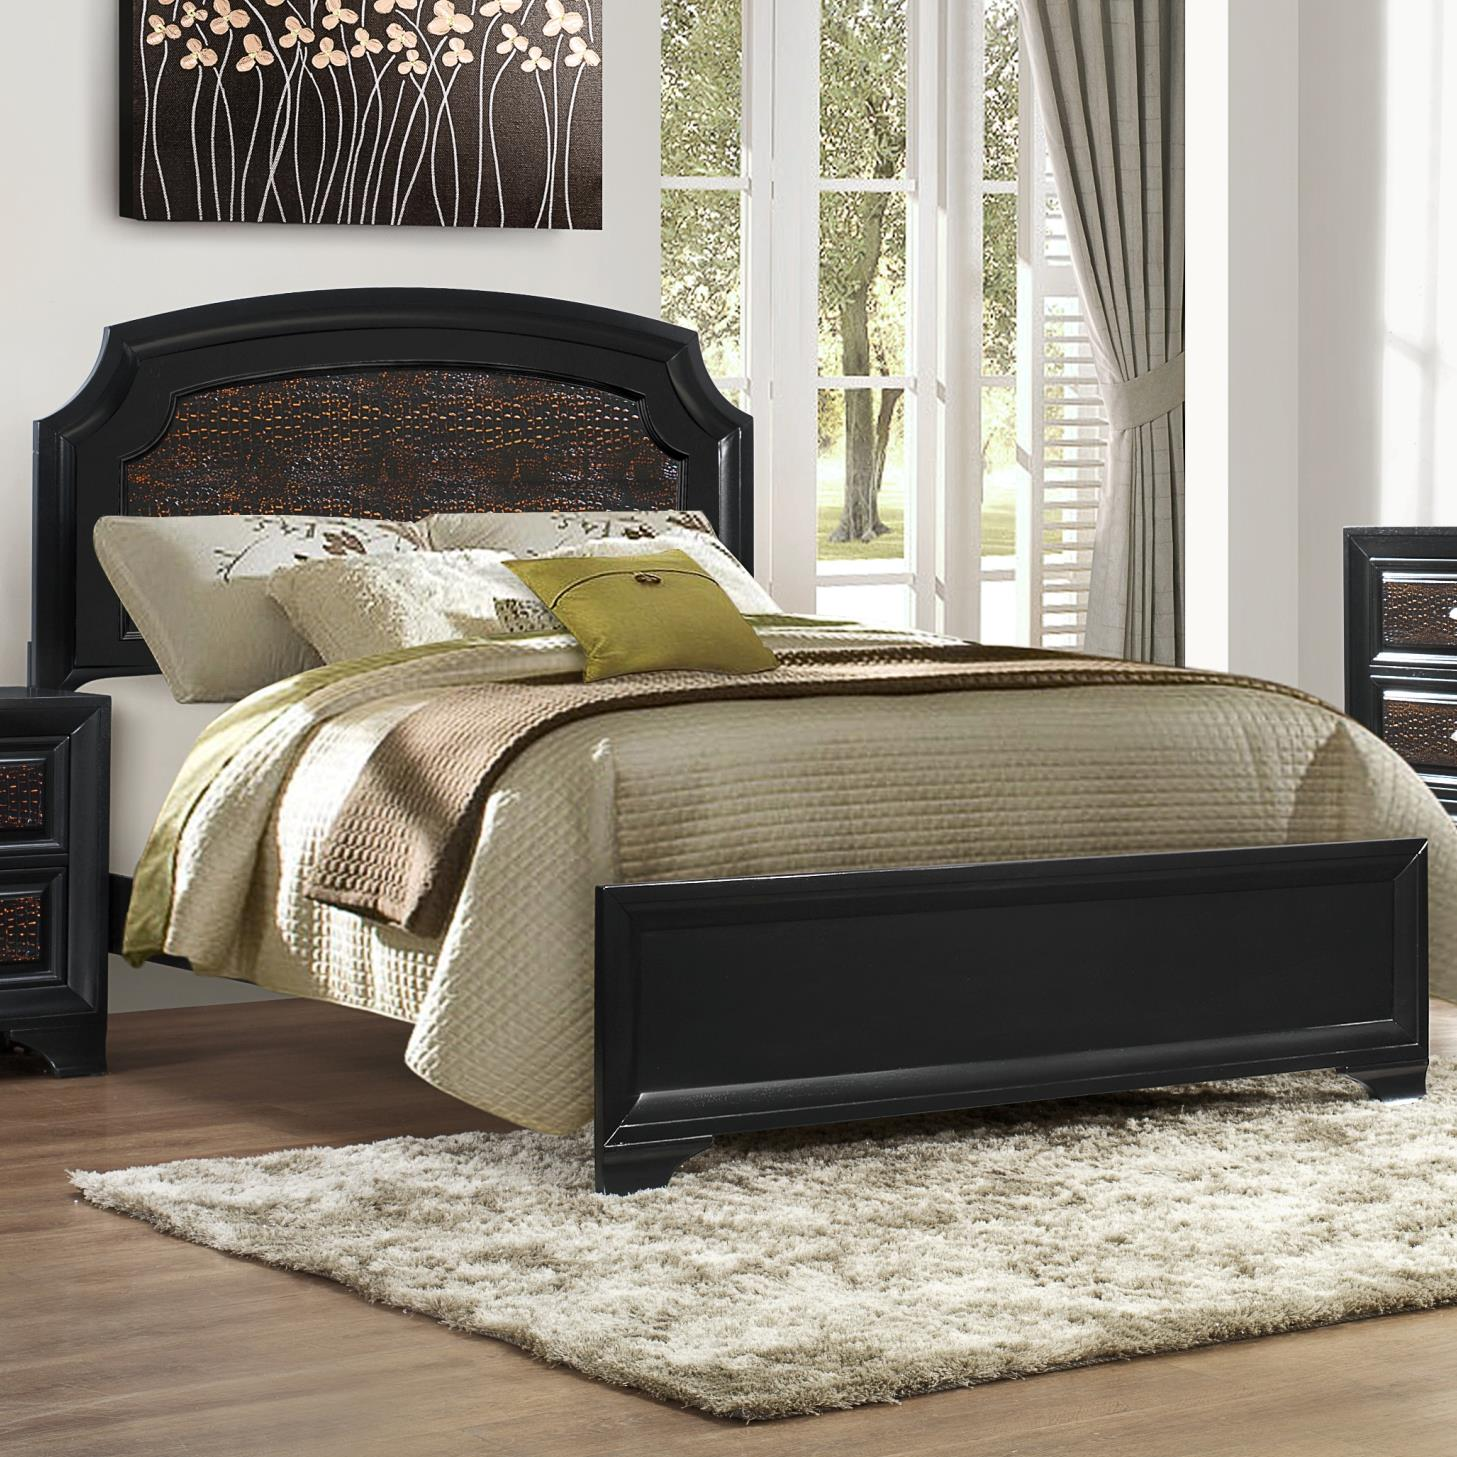 Crown Mark Andros Queen Bed - Item Number: B4300-Q-HBFB+KQ-RAIL